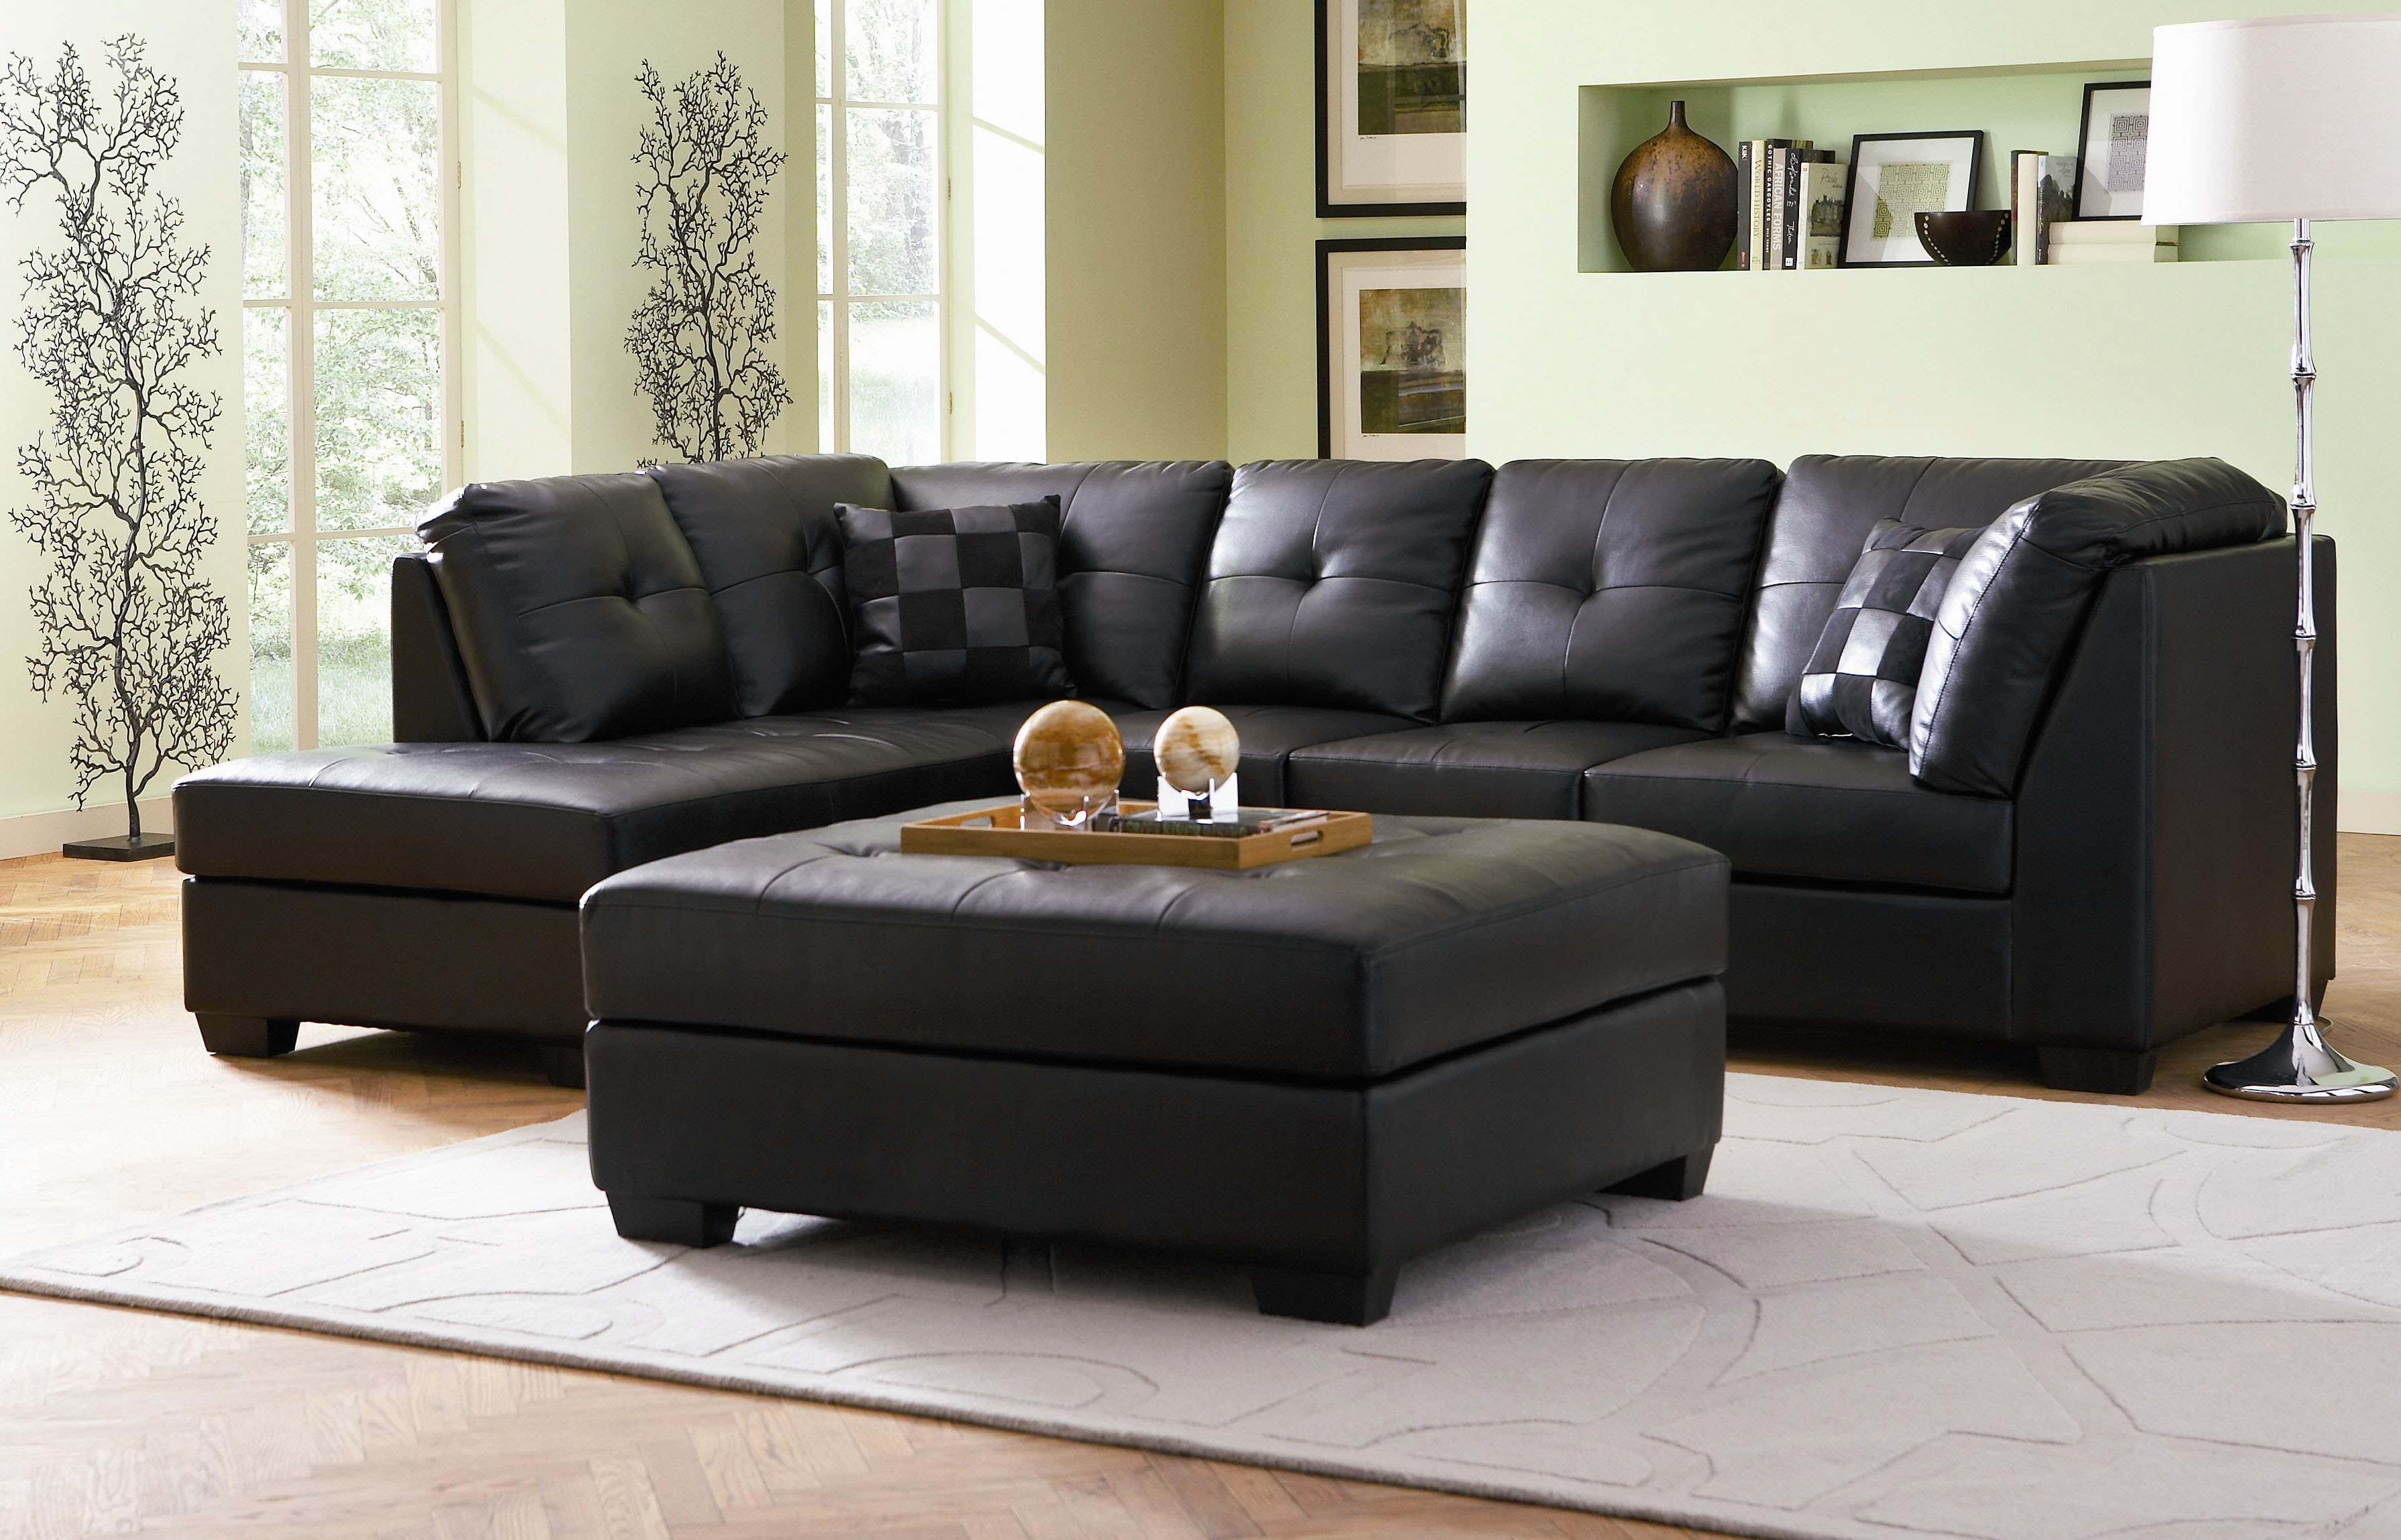 Furniture & Rug Cheap Sectional Couches For Home Furniture Idea